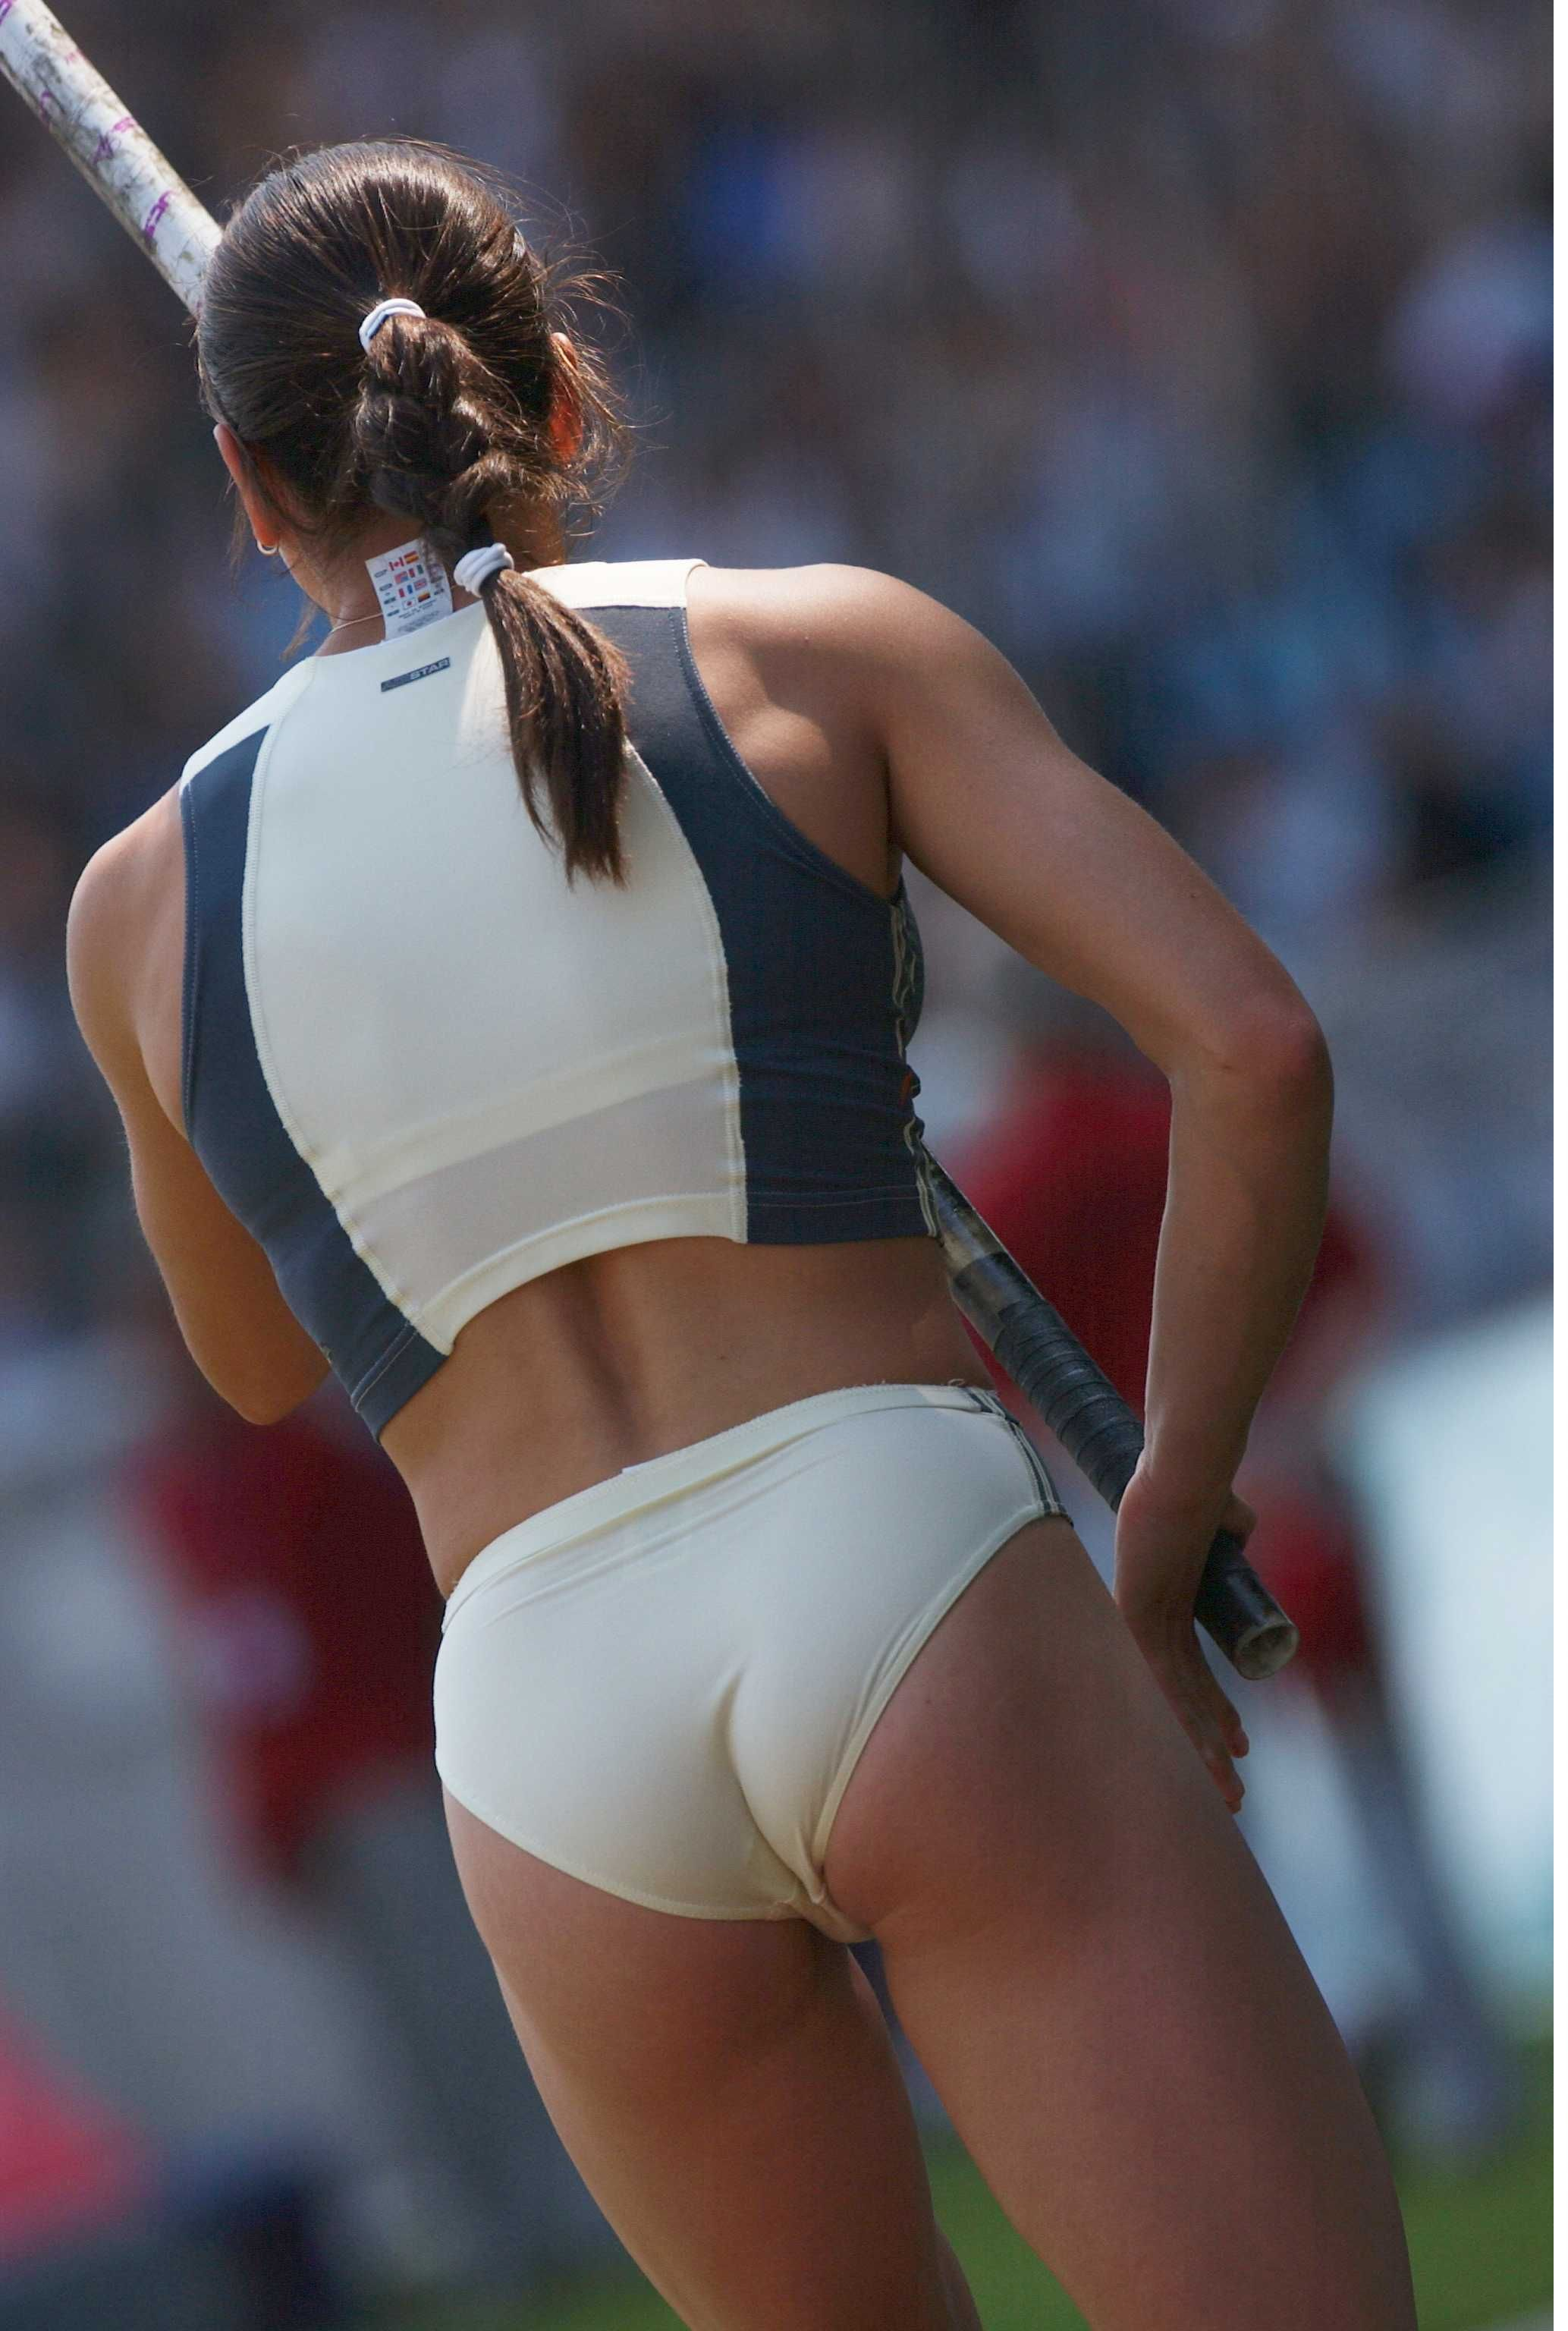 naked bottomless female athletes